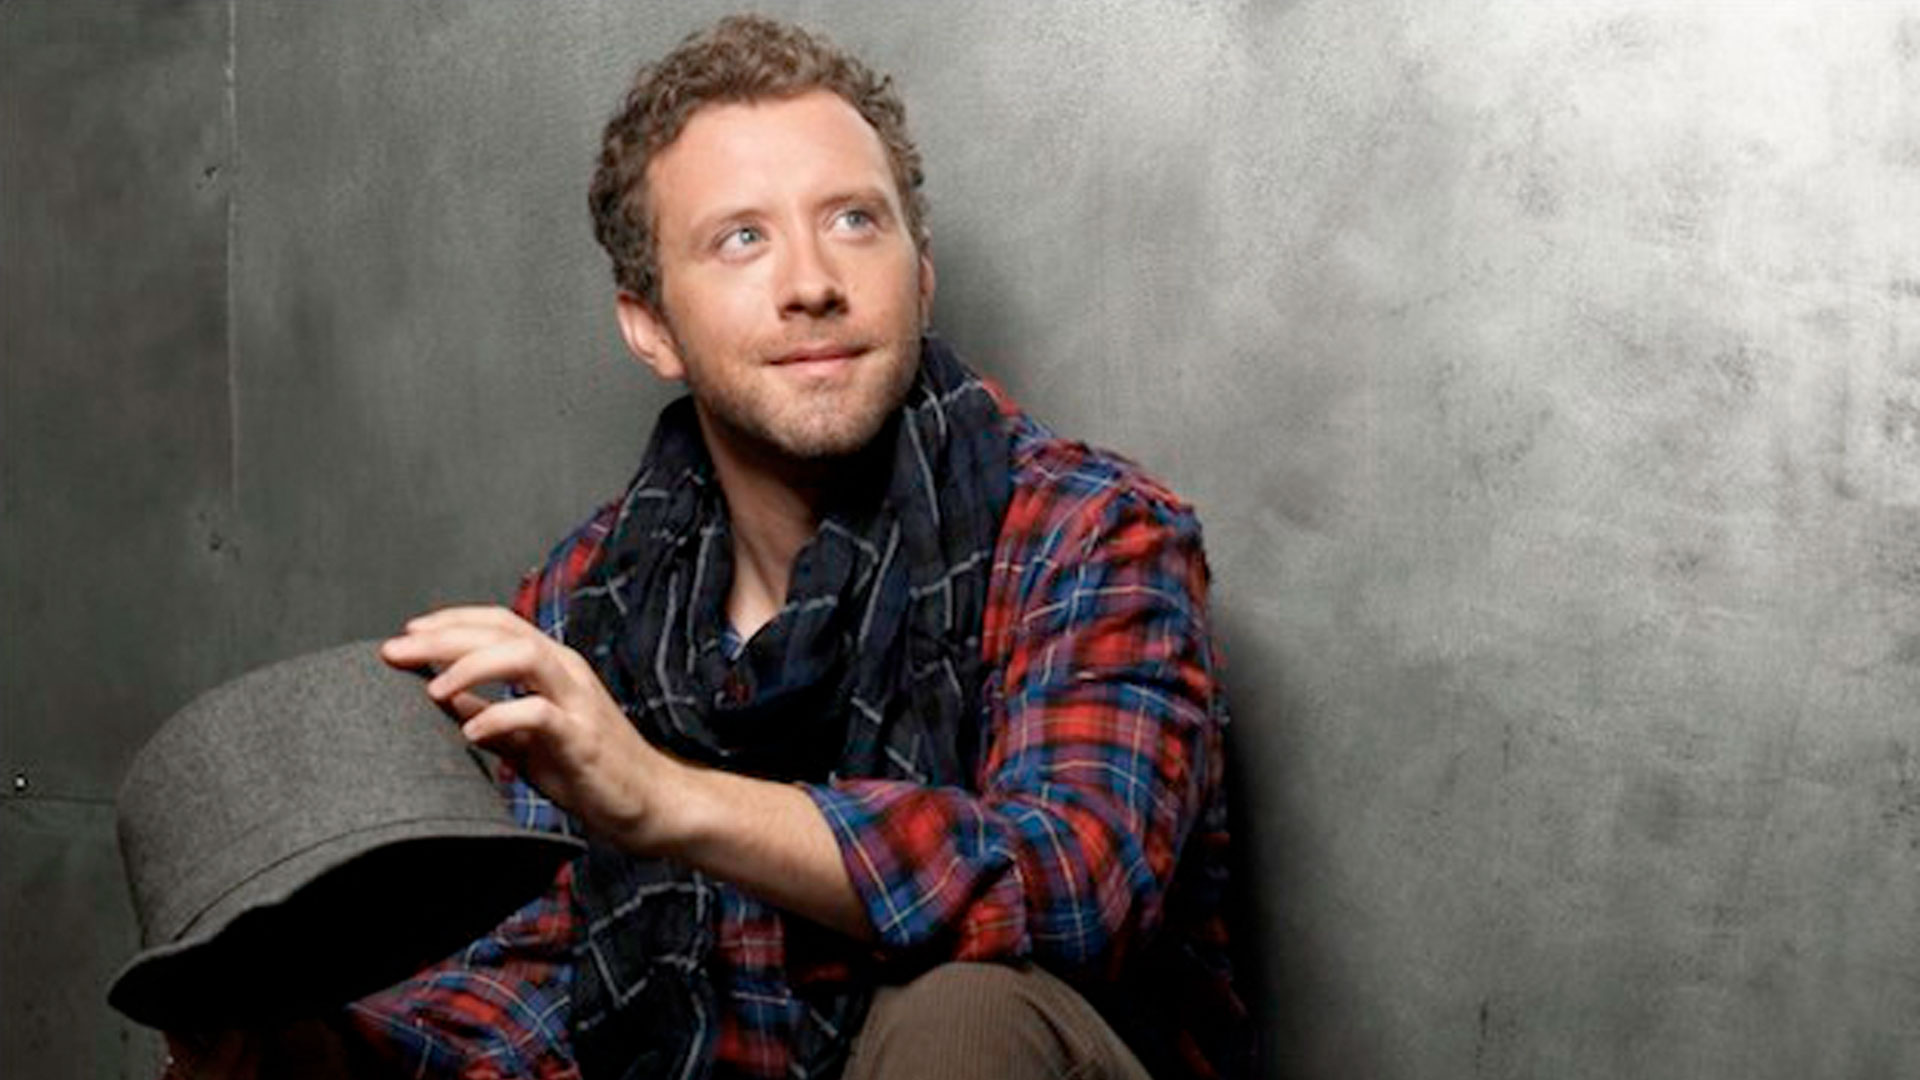 TJ Thyne photoshoot image, wearing plaid shirt, plaid scarf and grey hat, sittng against a wall